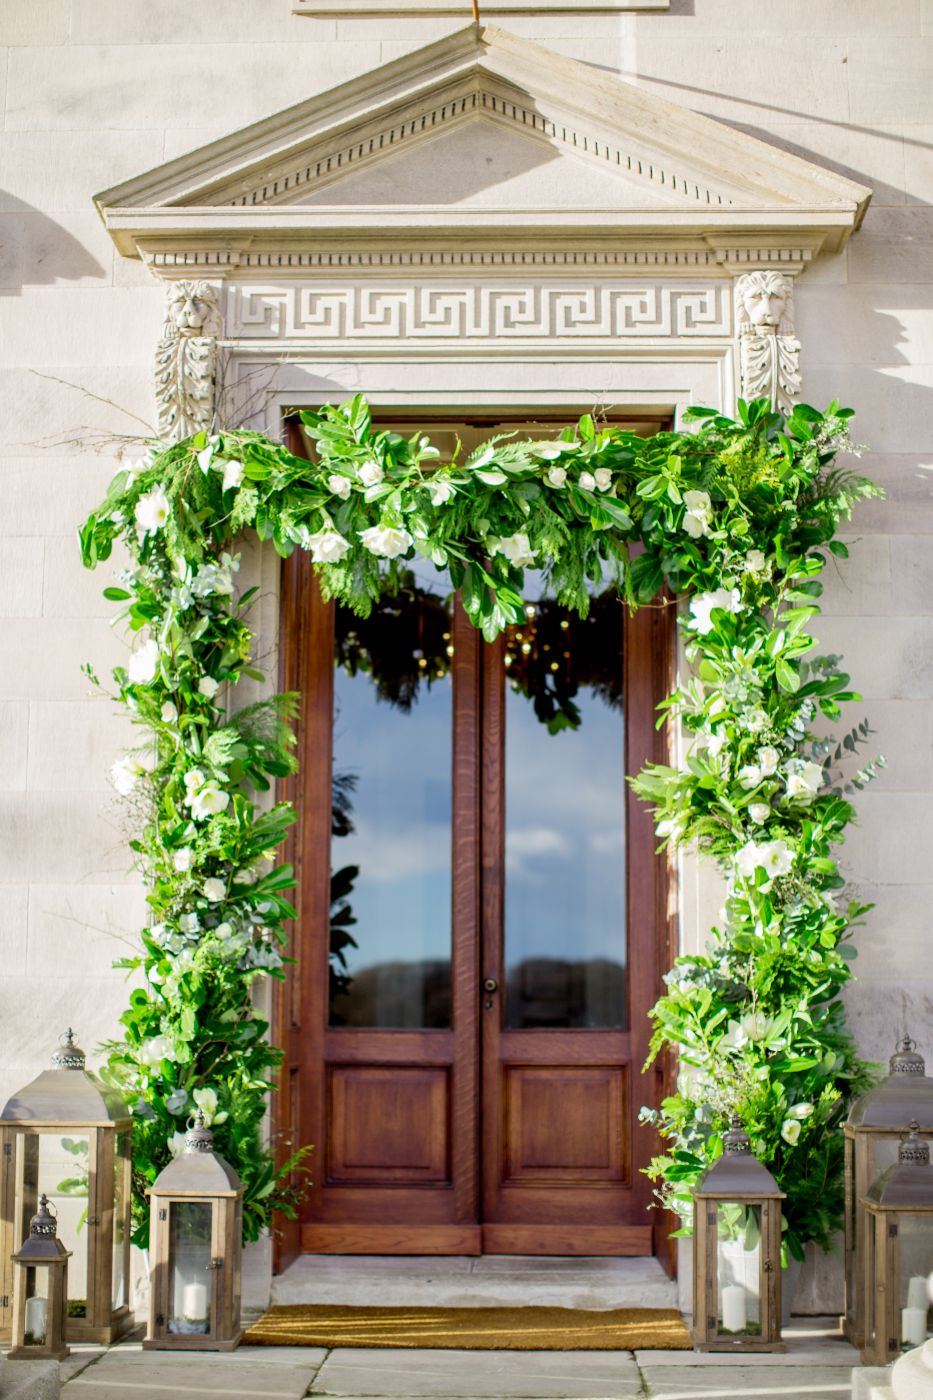 Ivy and flowers surrounding church entrance before wedding.